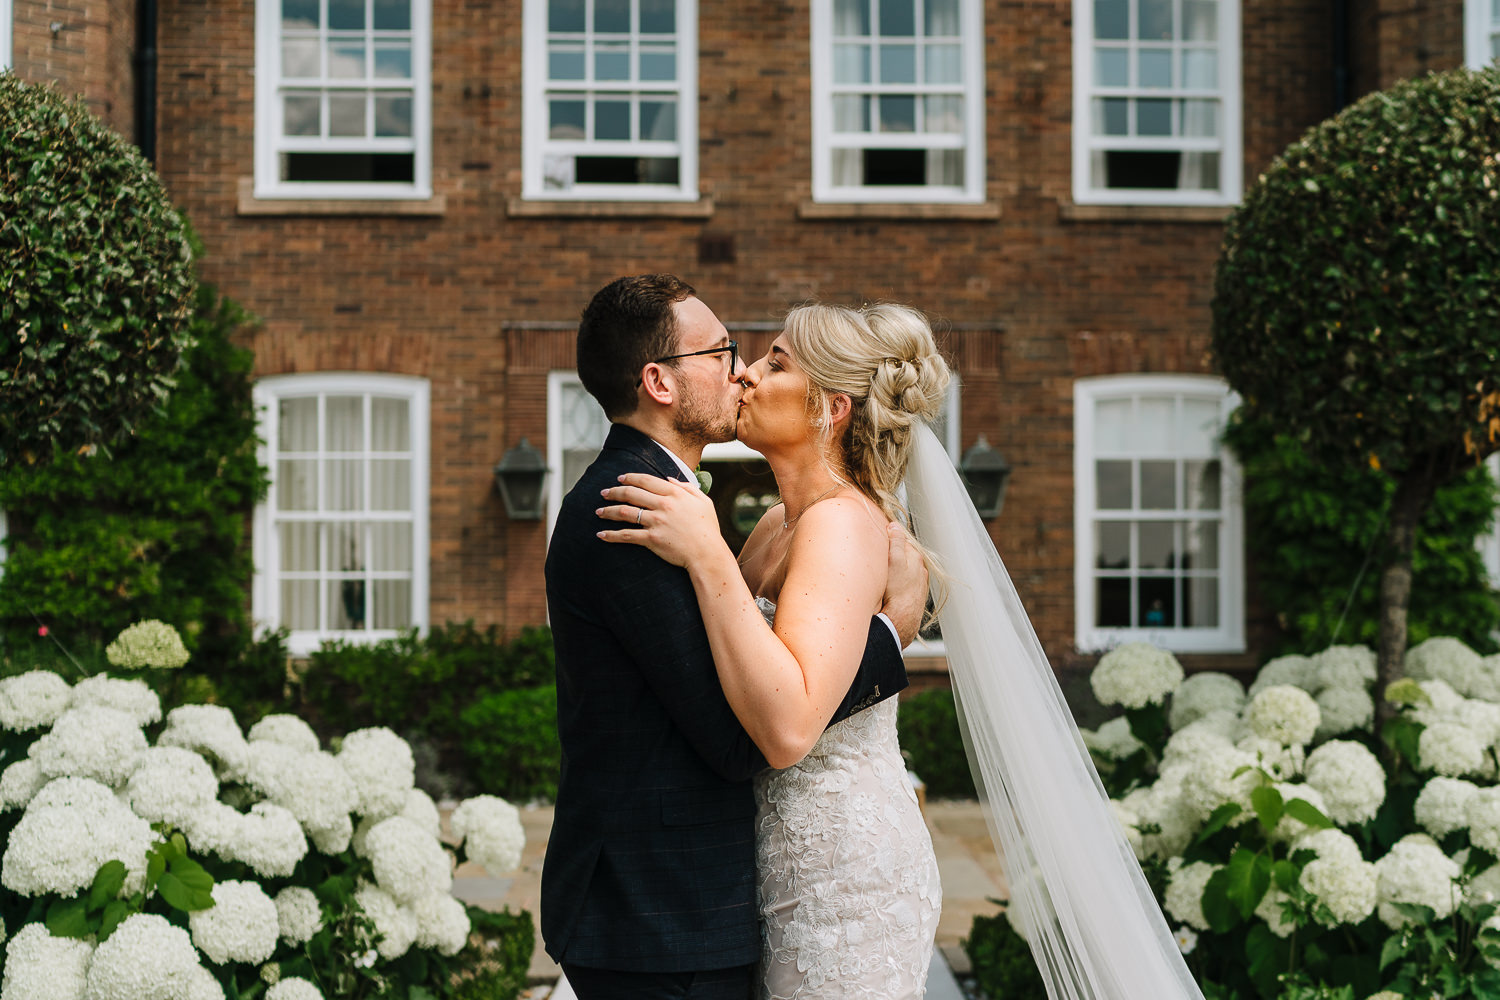 First kiss at Delamere Manor